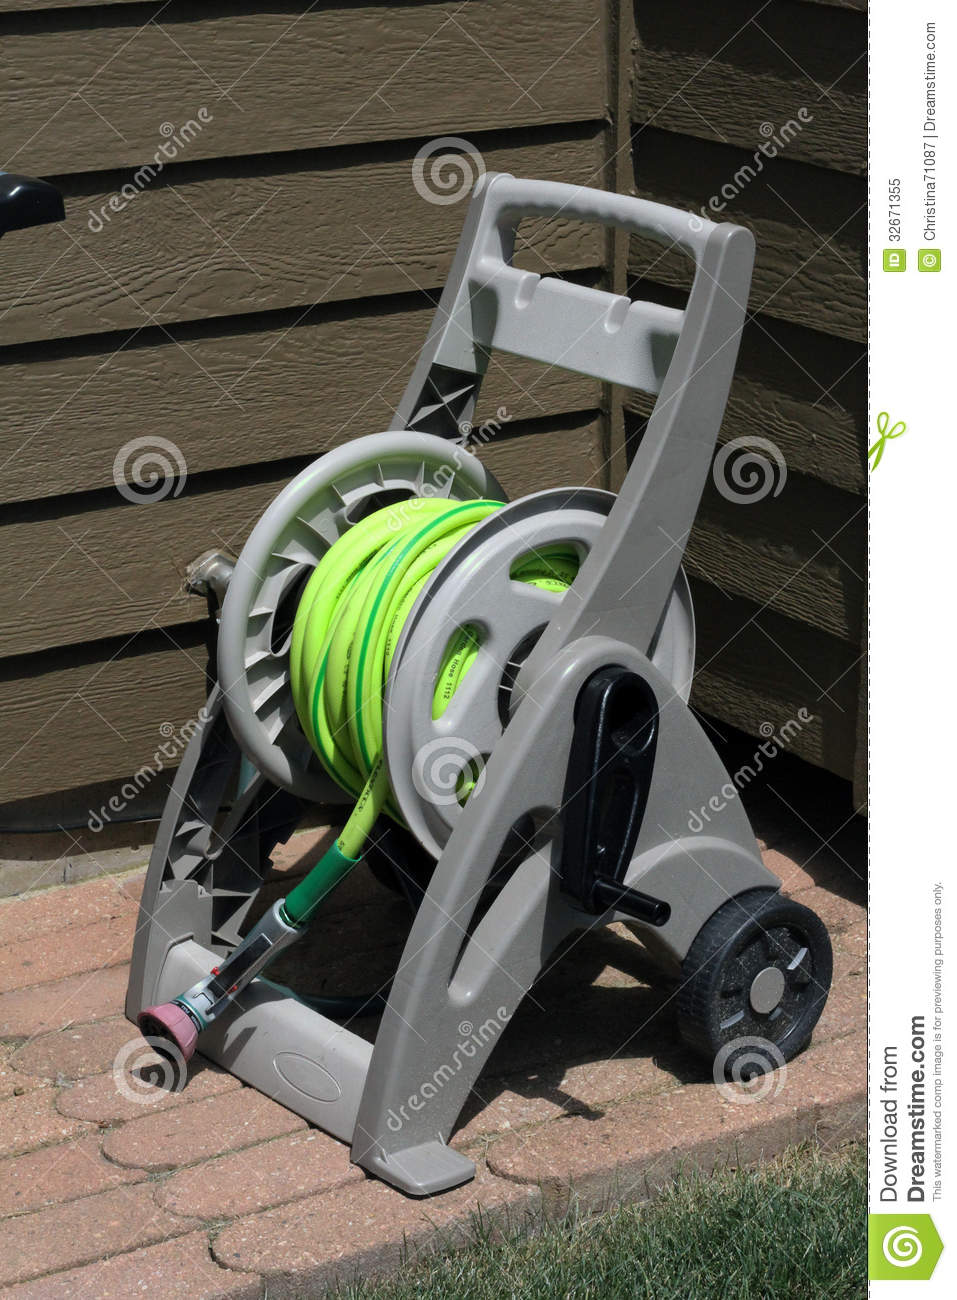 Image Result For Garden Hose Holder